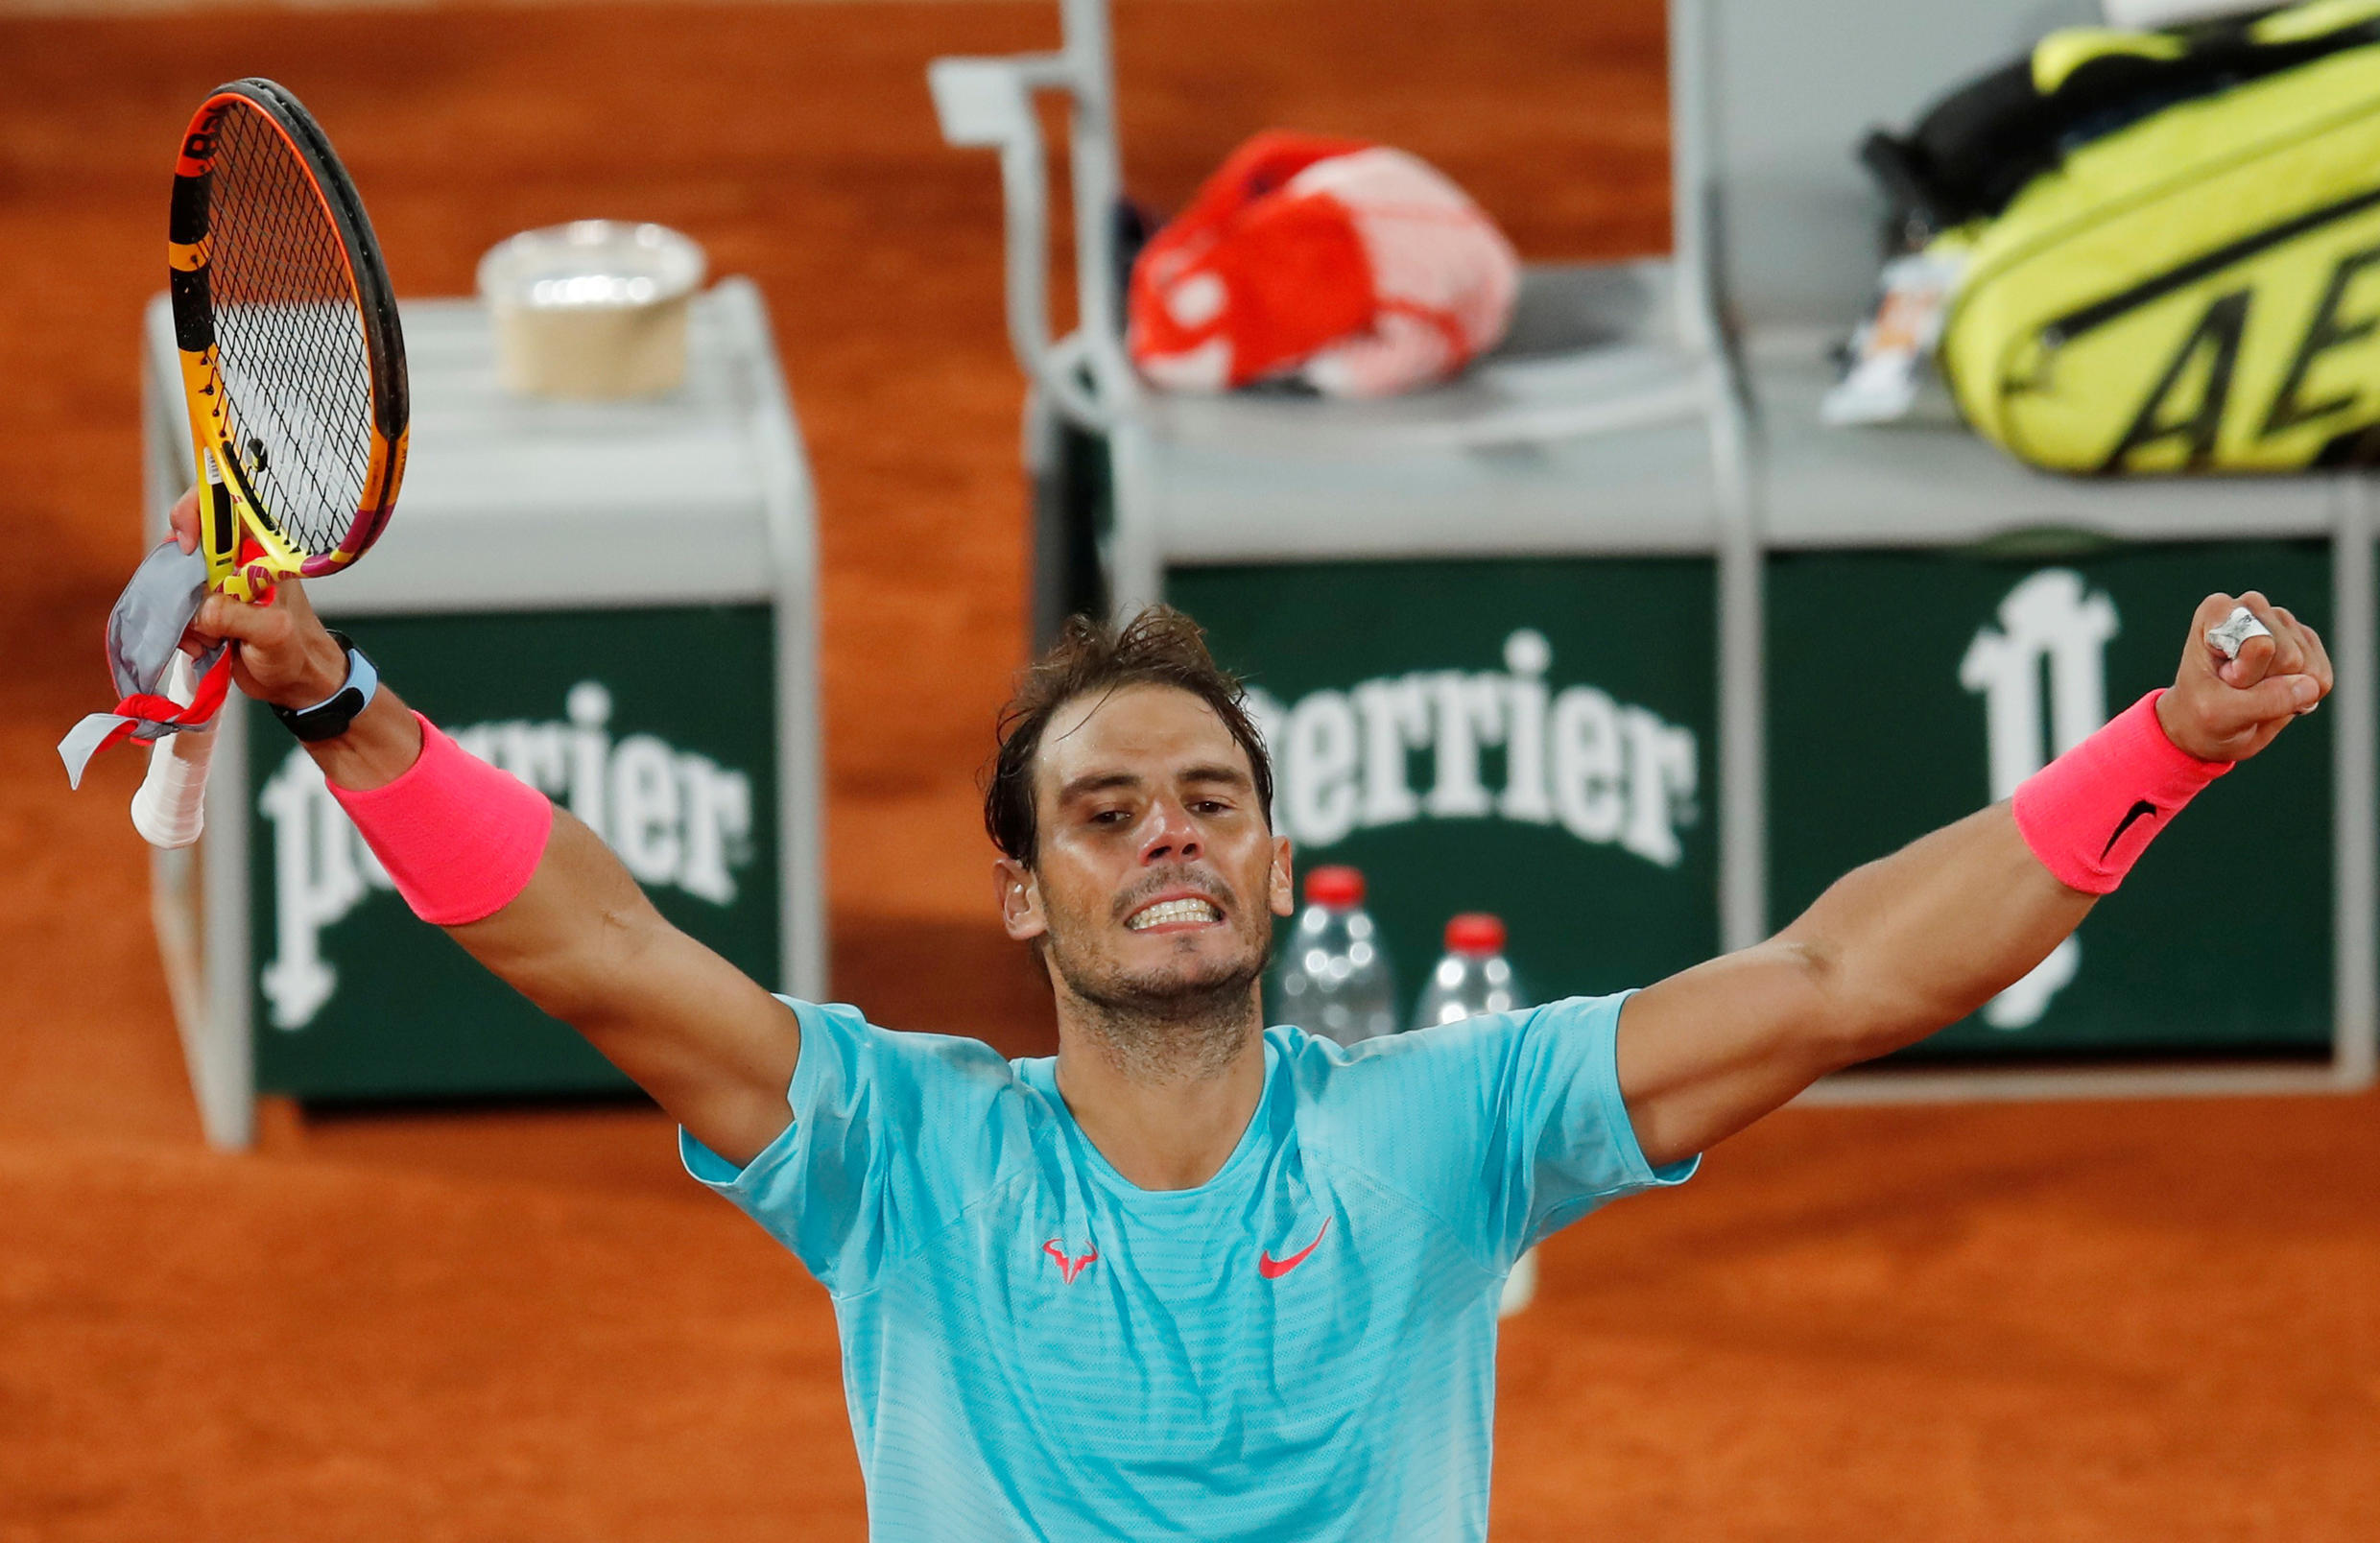 Nadal wins French Open Quarter Final